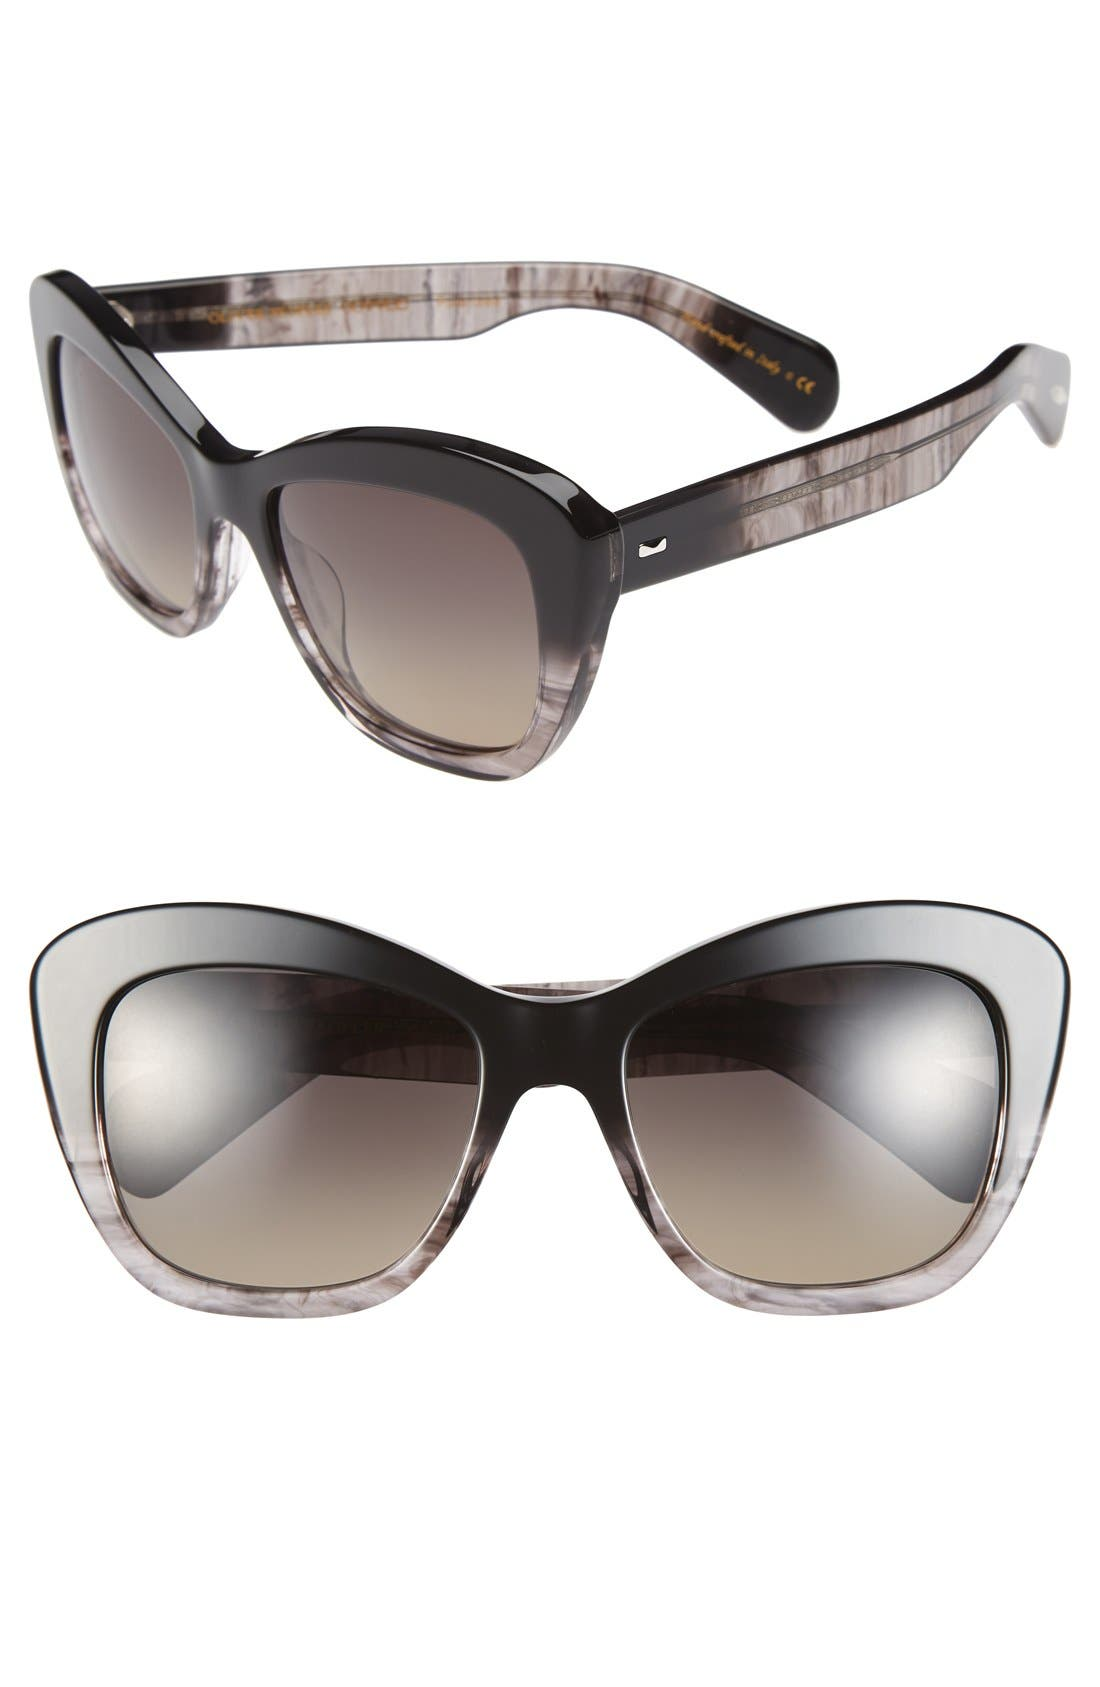 Main Image - Oliver Peoples 'Emmy' 55mm Gradient Polarized Sunglasses